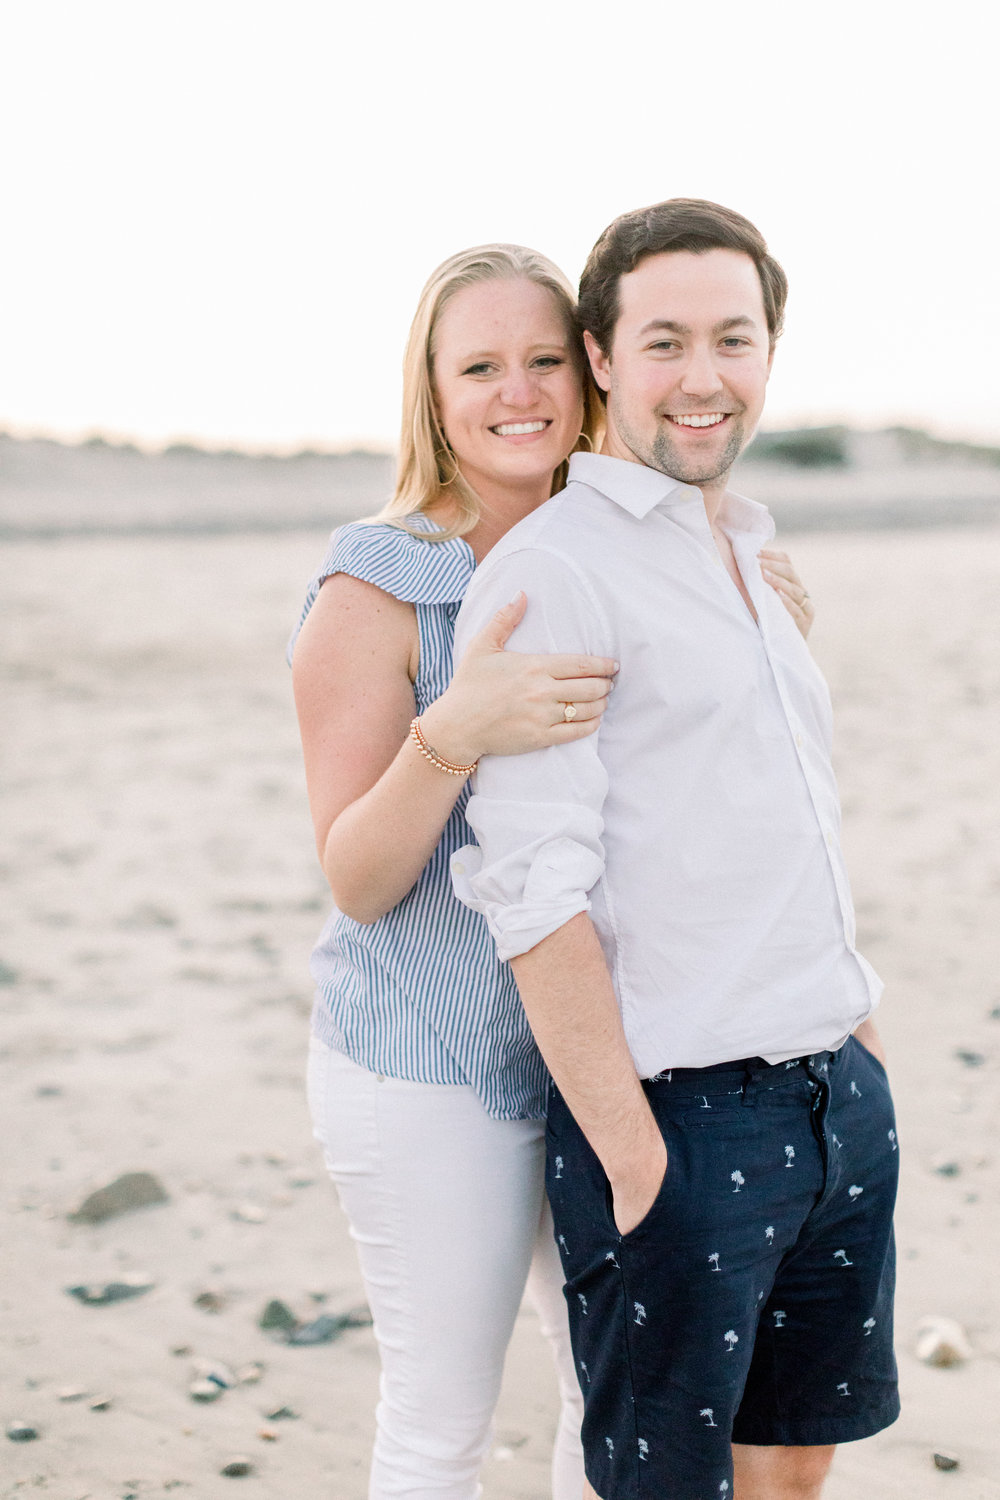 rexhame-beach-engagement-session-alisha-norden-photography-134.JPG